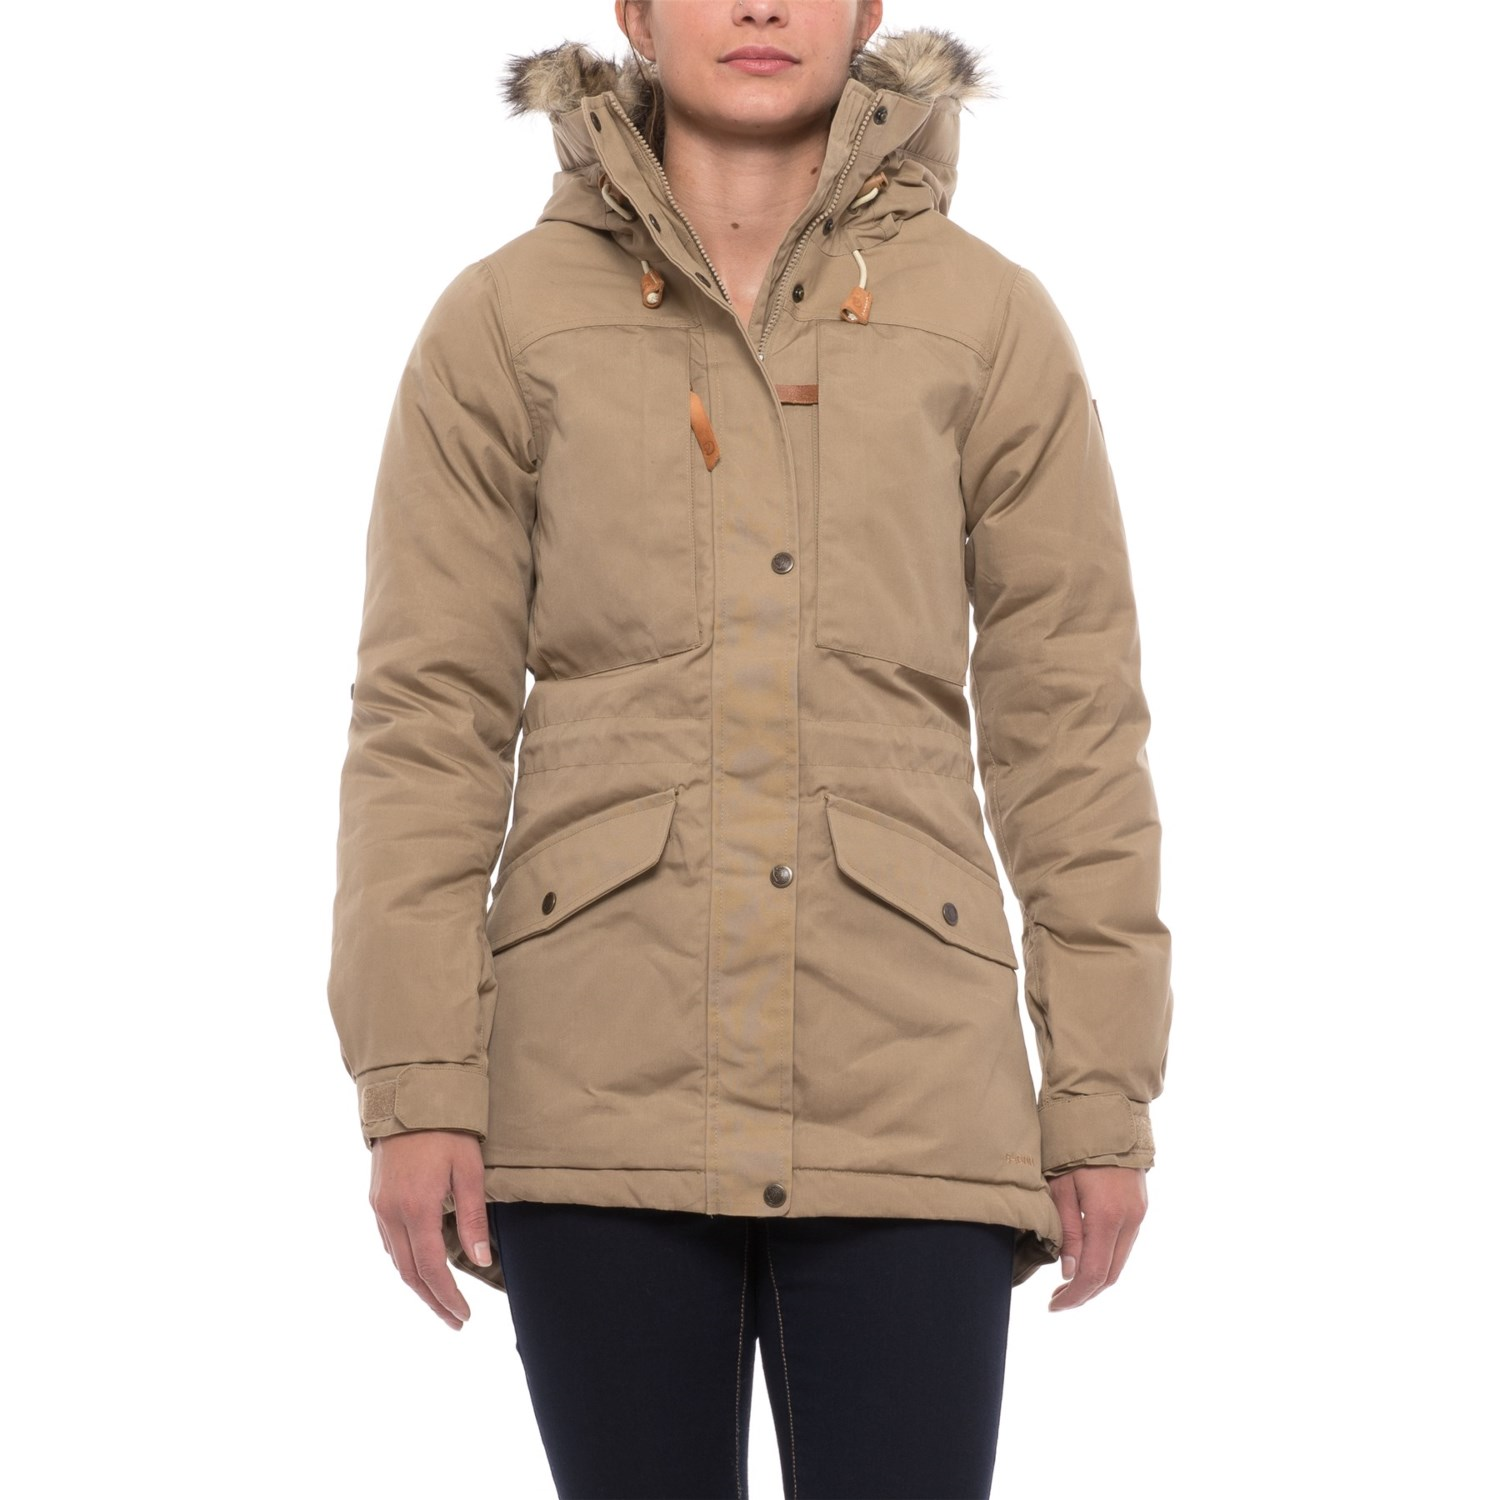 fjallraven singi down jacket review